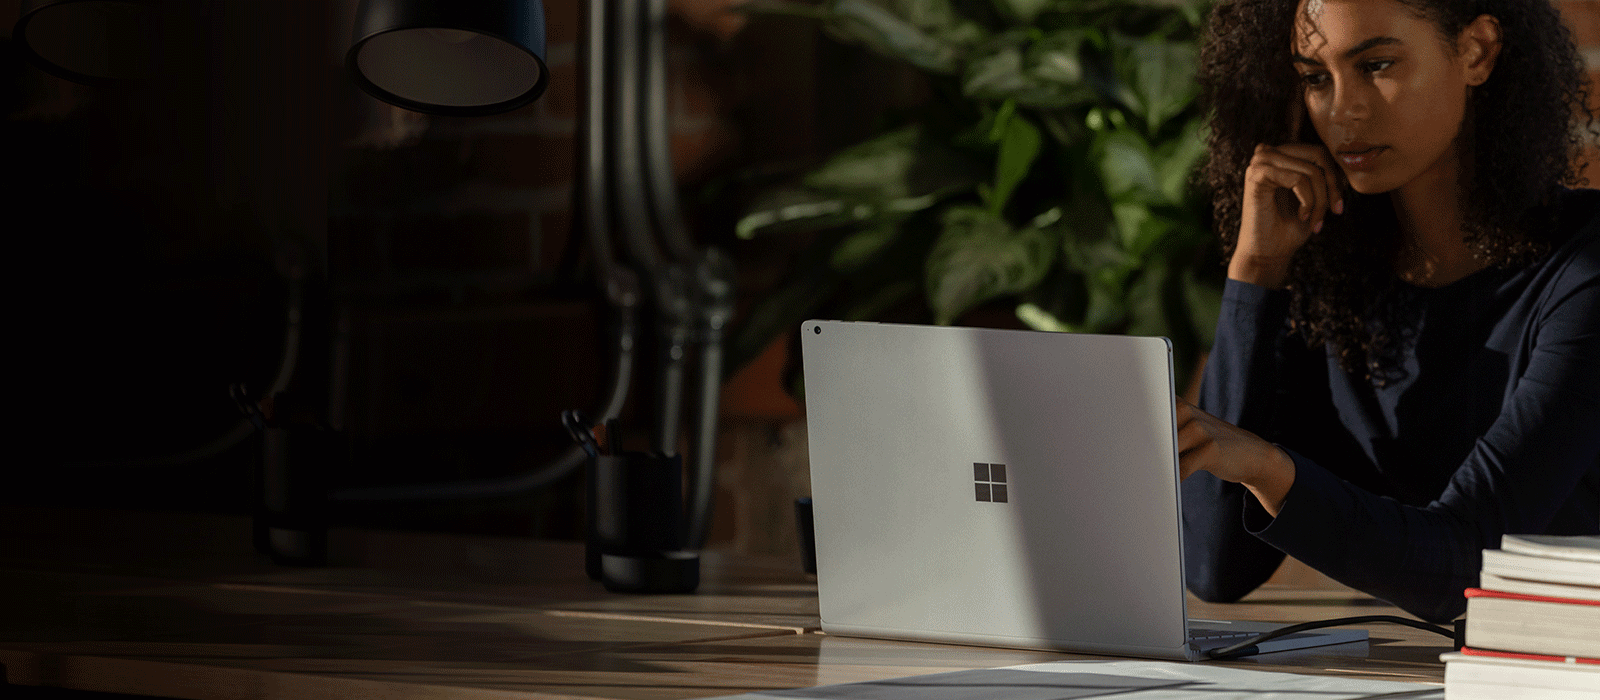 A woman is working at her desk with the Surface Book 3 in laptop mode and uses the touch screen